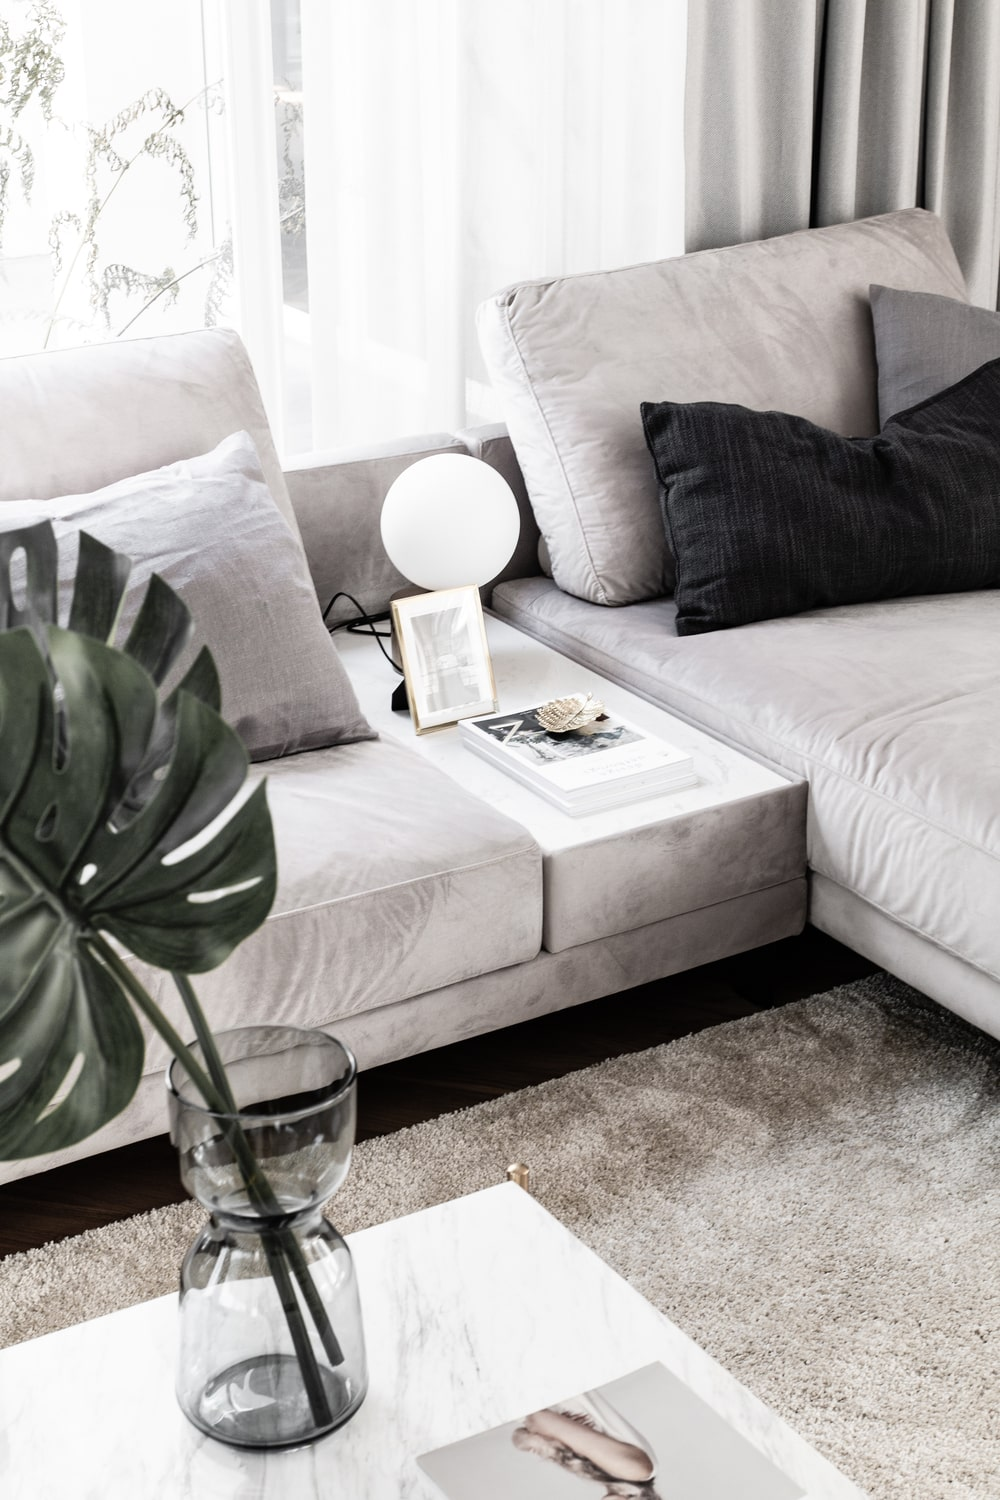 This is a close look at the divider of the L-shaped sofa that also serves as a table surface.